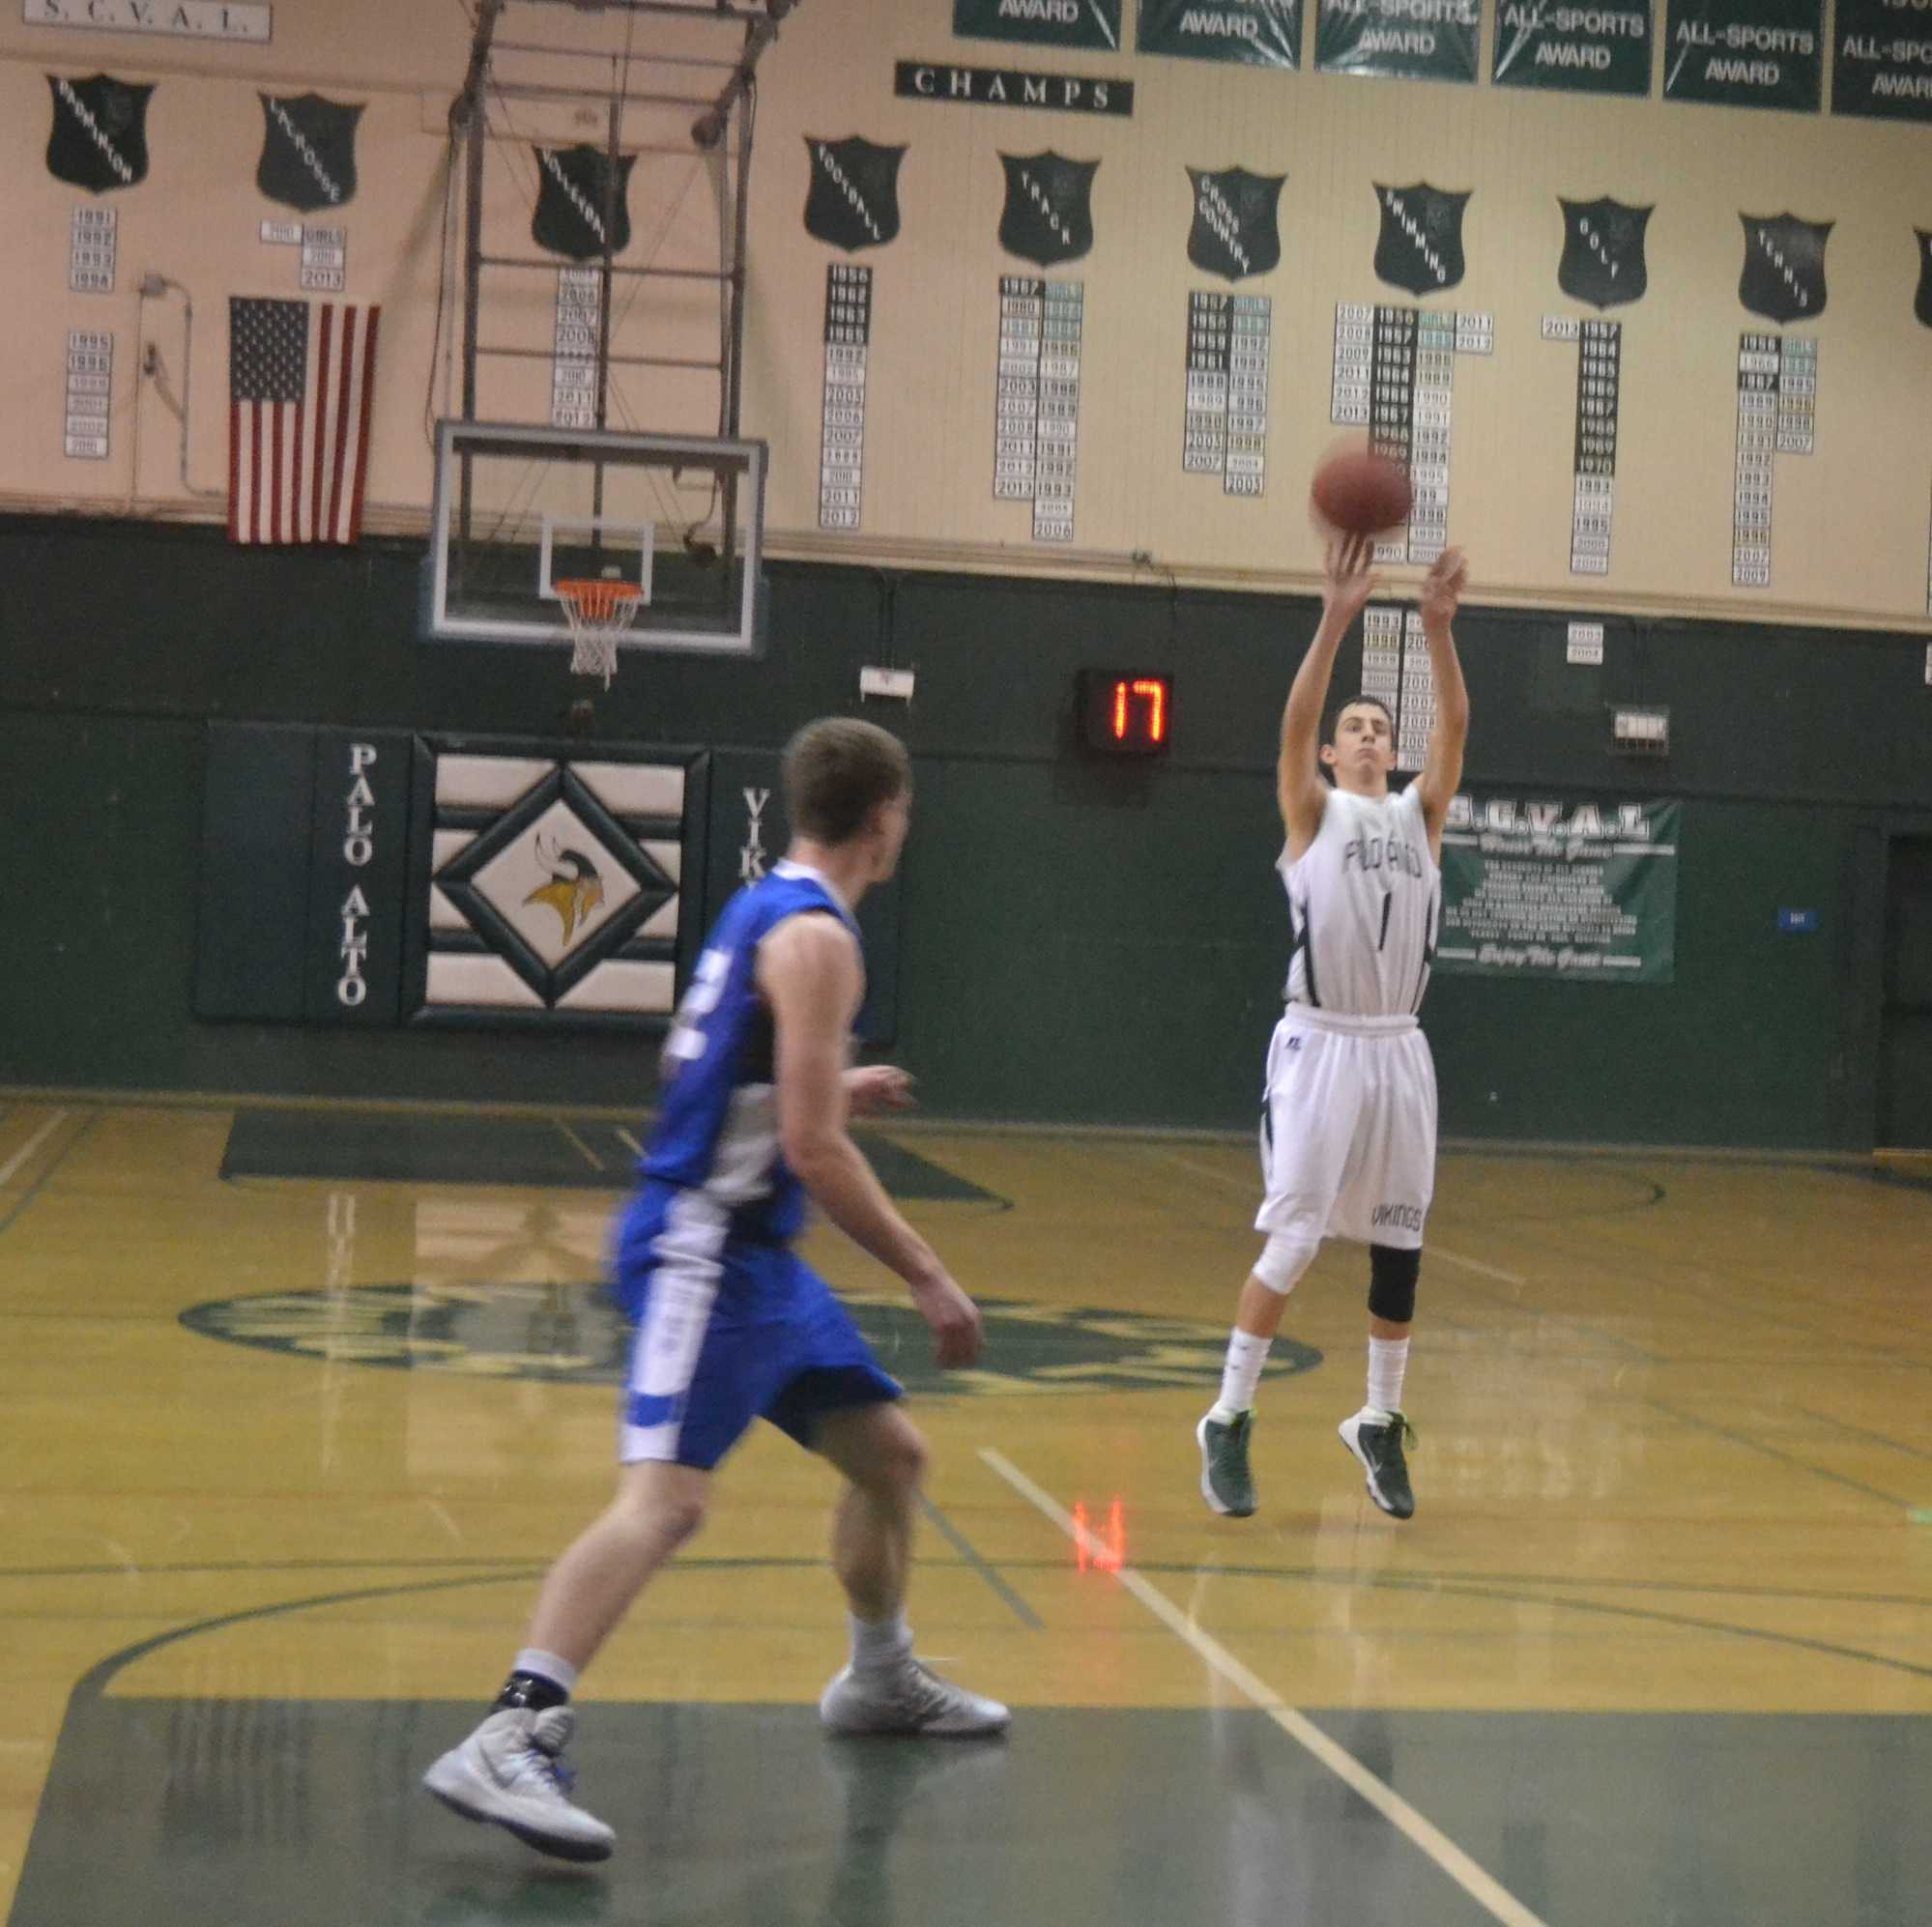 Noah Phillips ('14) shoots from the three-point line during Wednesday's basketball game against the Los Altos Eagles. The Vikings won the game 55-51.